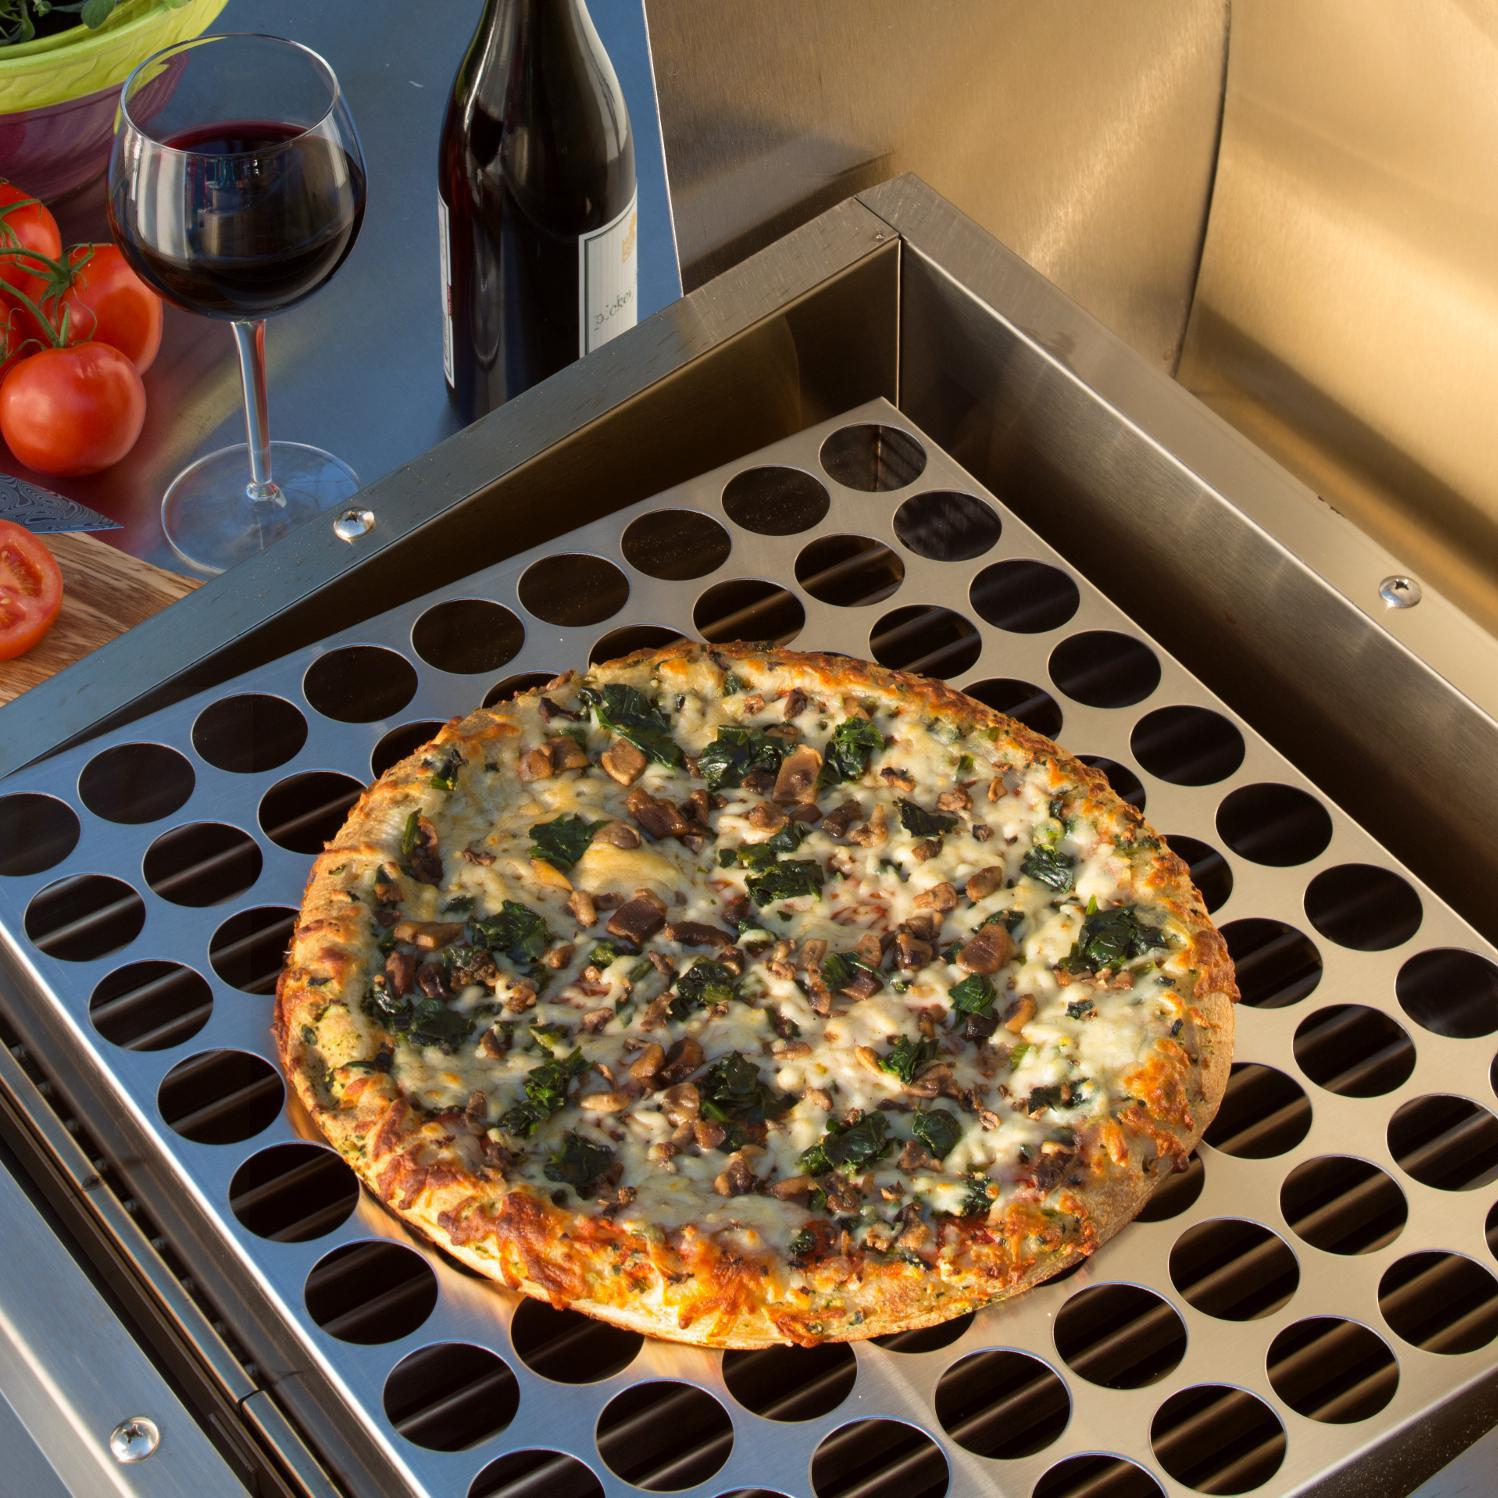 TEC Patio FR Series Stainless Steel Pizza Rack